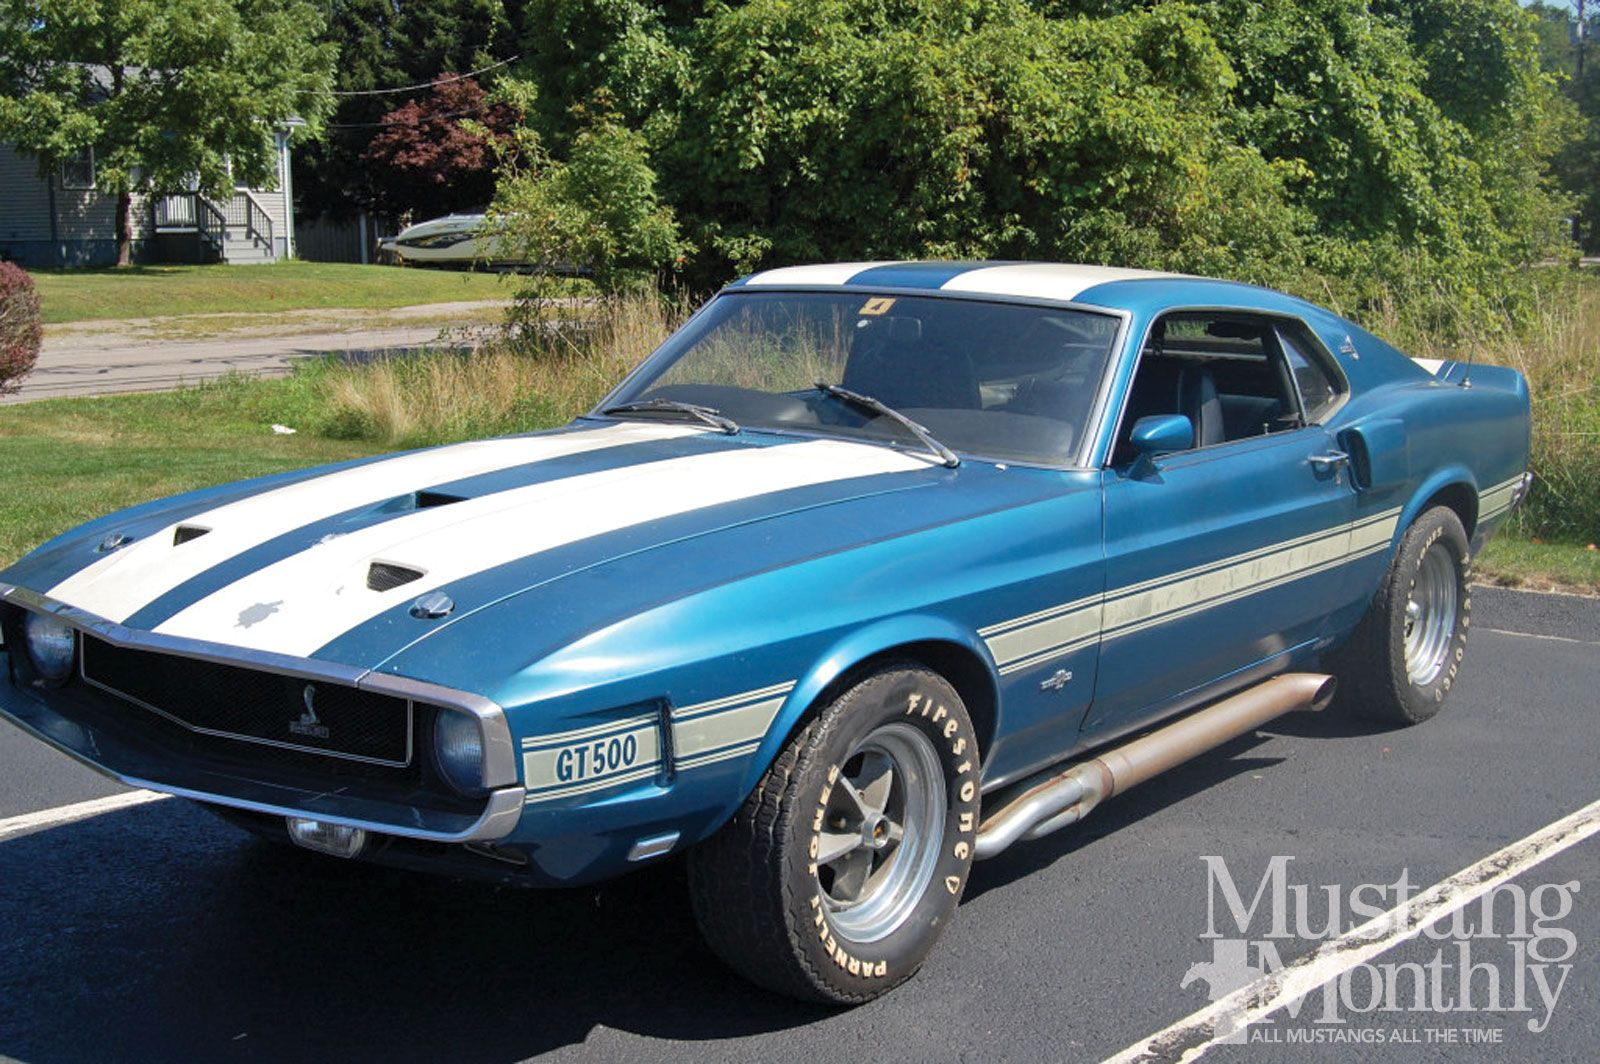 Shelby Mustang 1969 Gt500 44g4fbrl Top Car Wallpaper Shelby